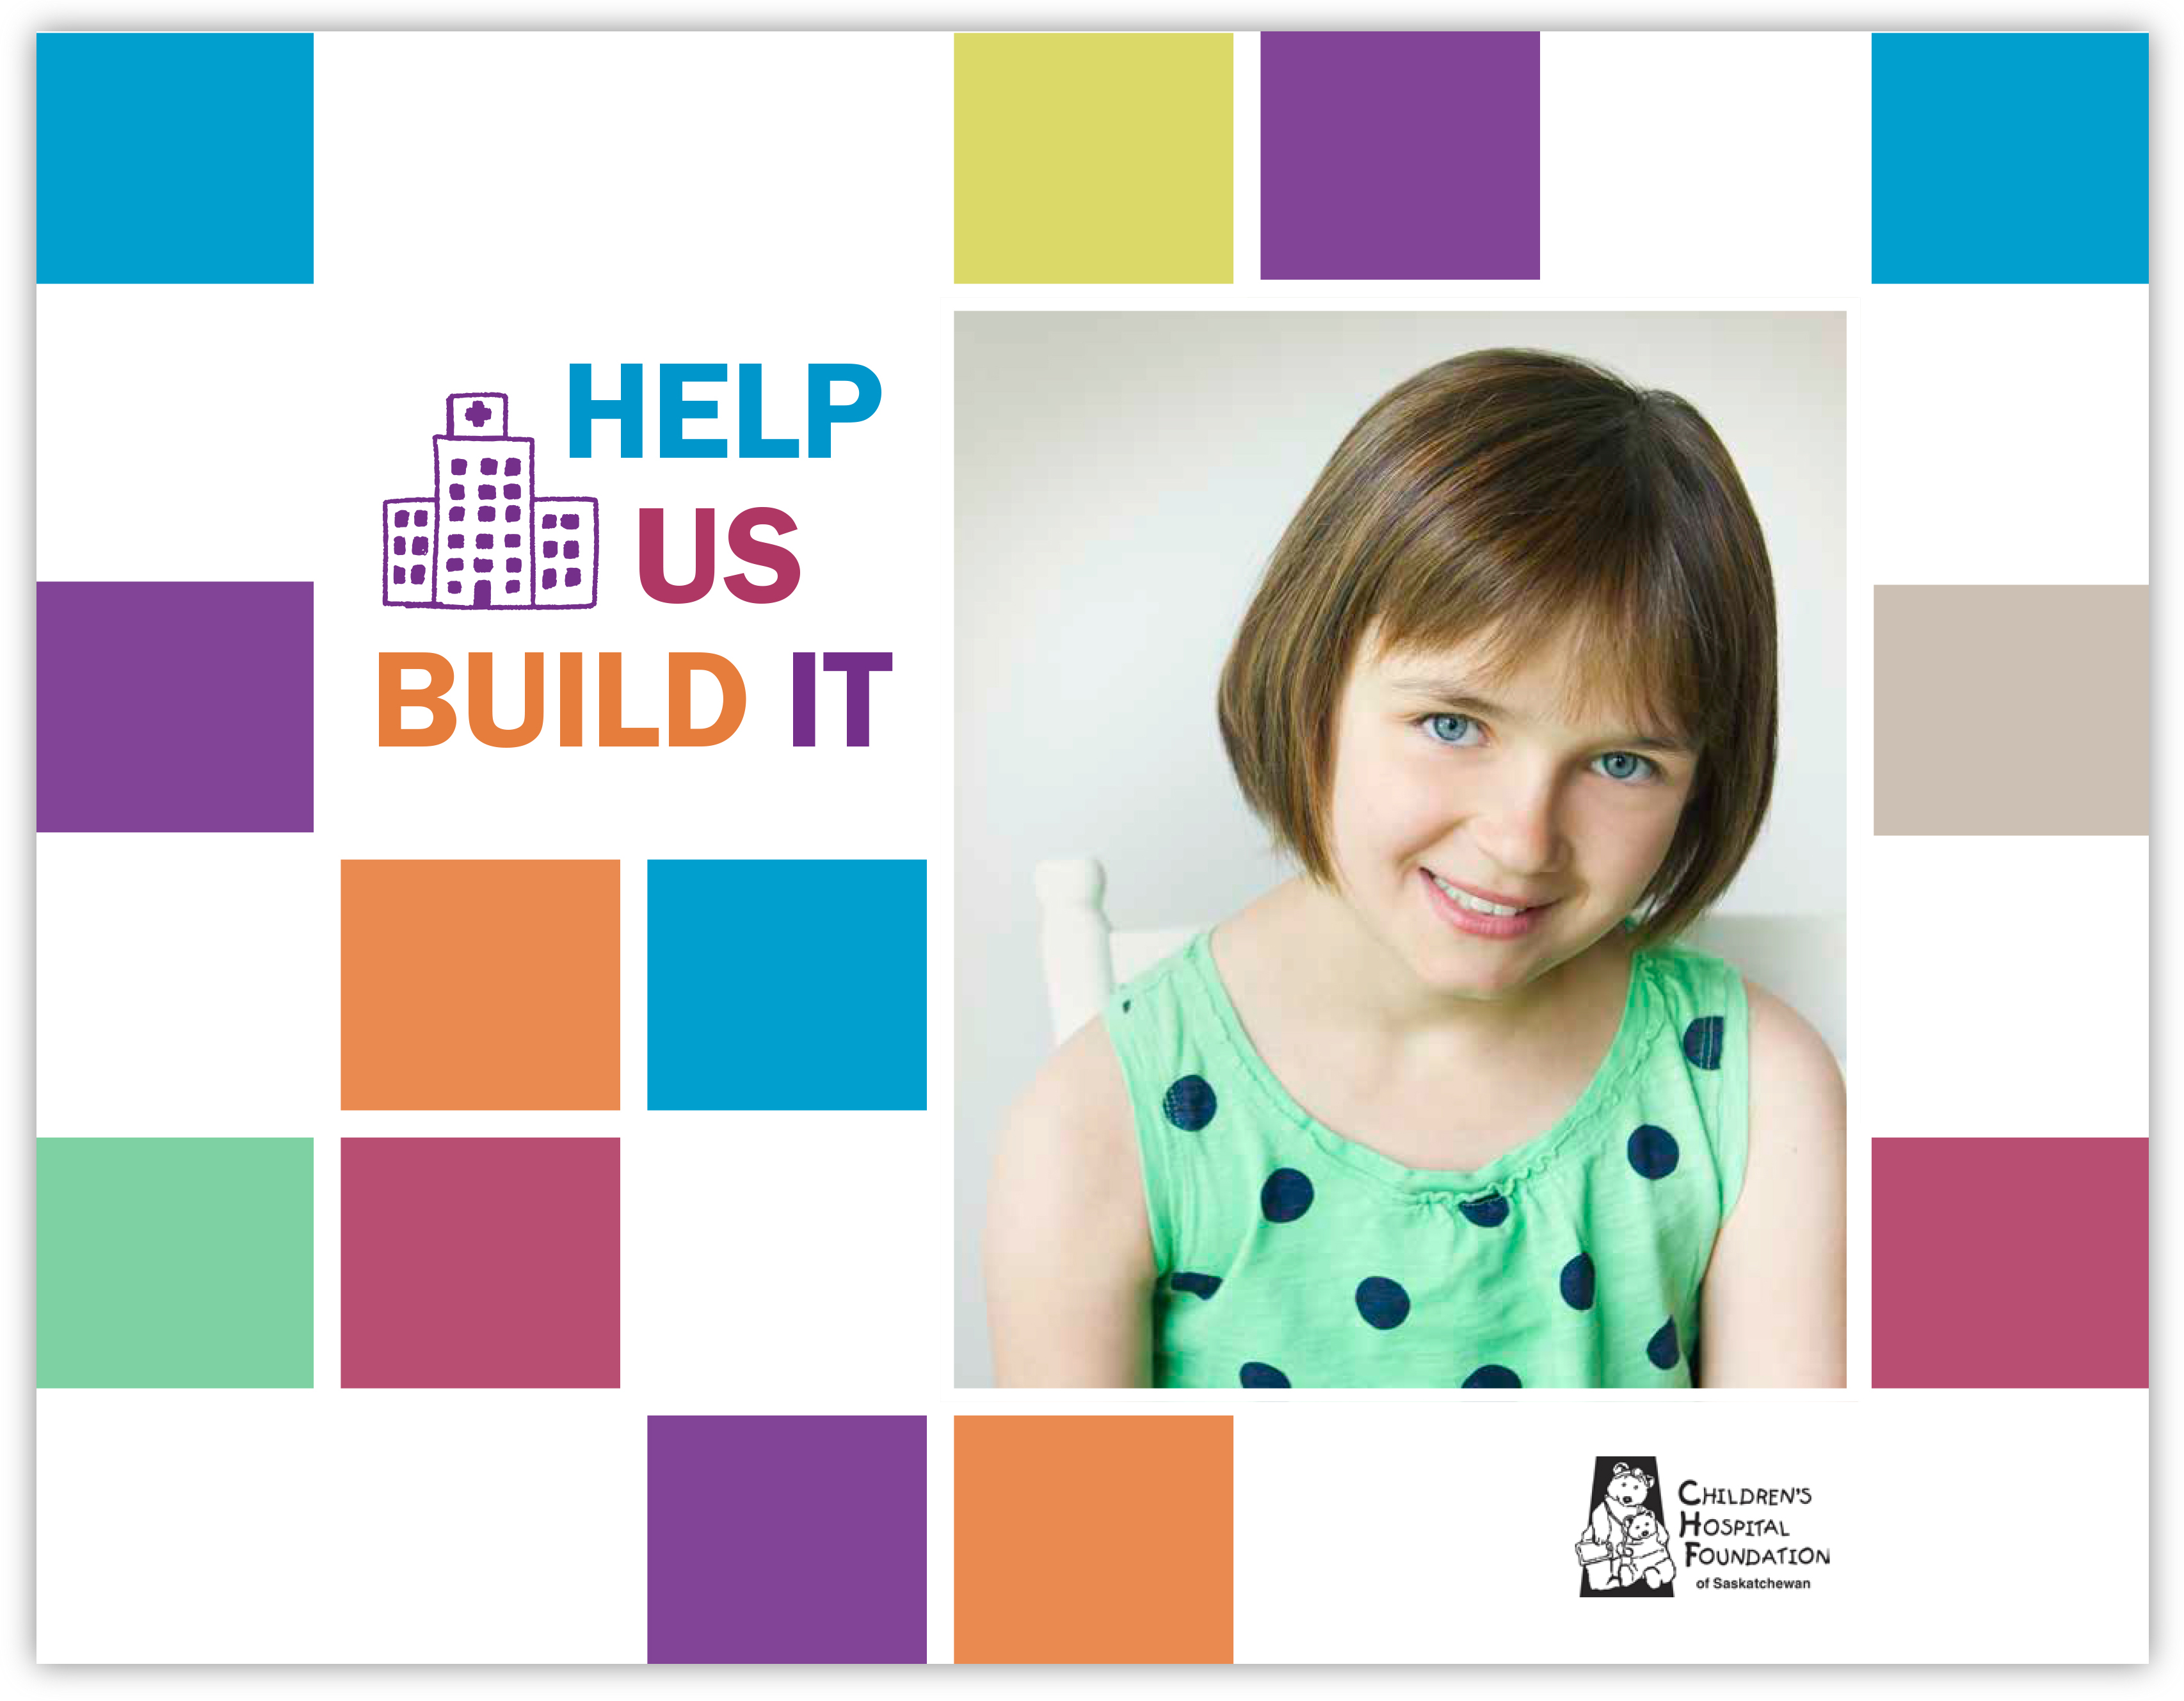 Children's Hospital Campaign 1